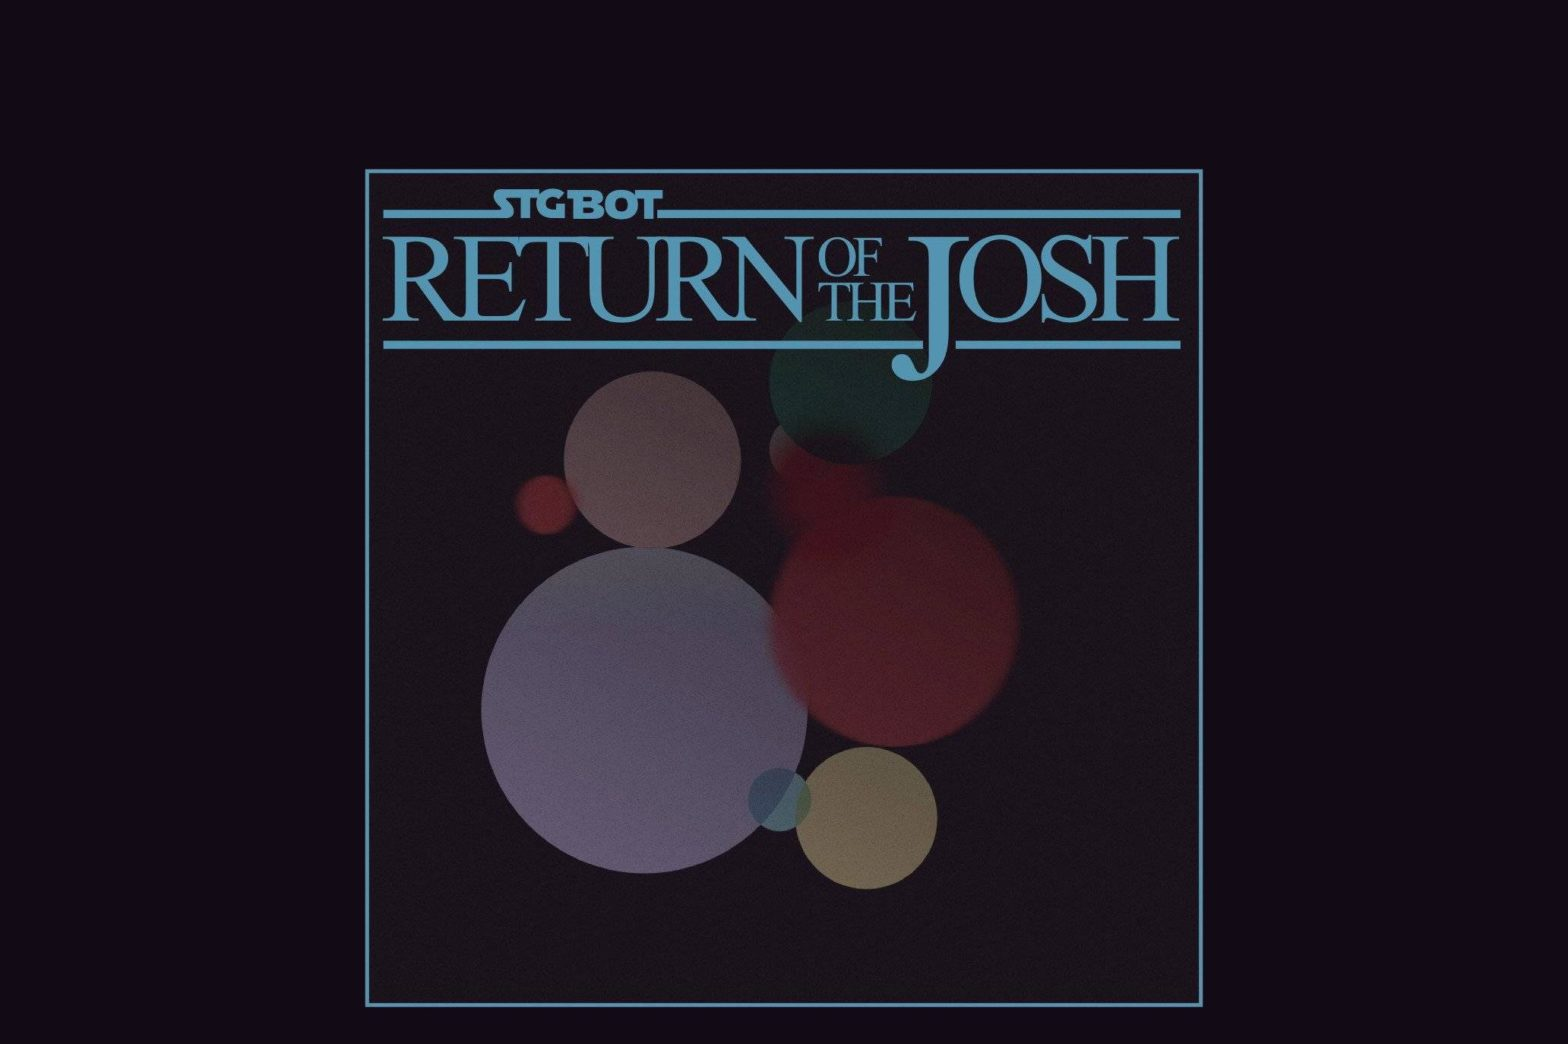 Cover image says STG BOT Return of the Josh